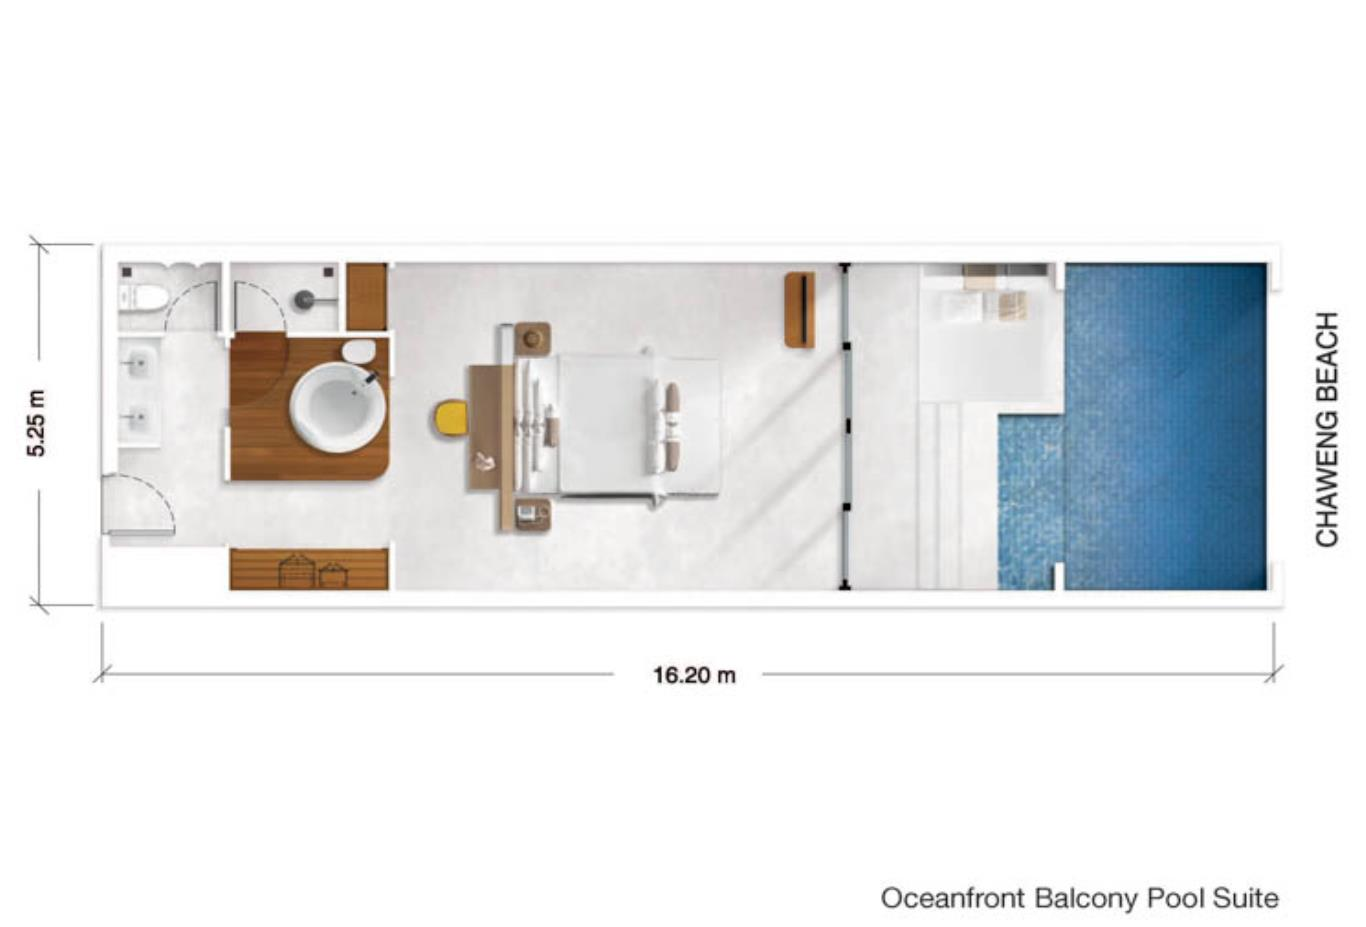 Oceanfront Balcony Pool Suite floorplan